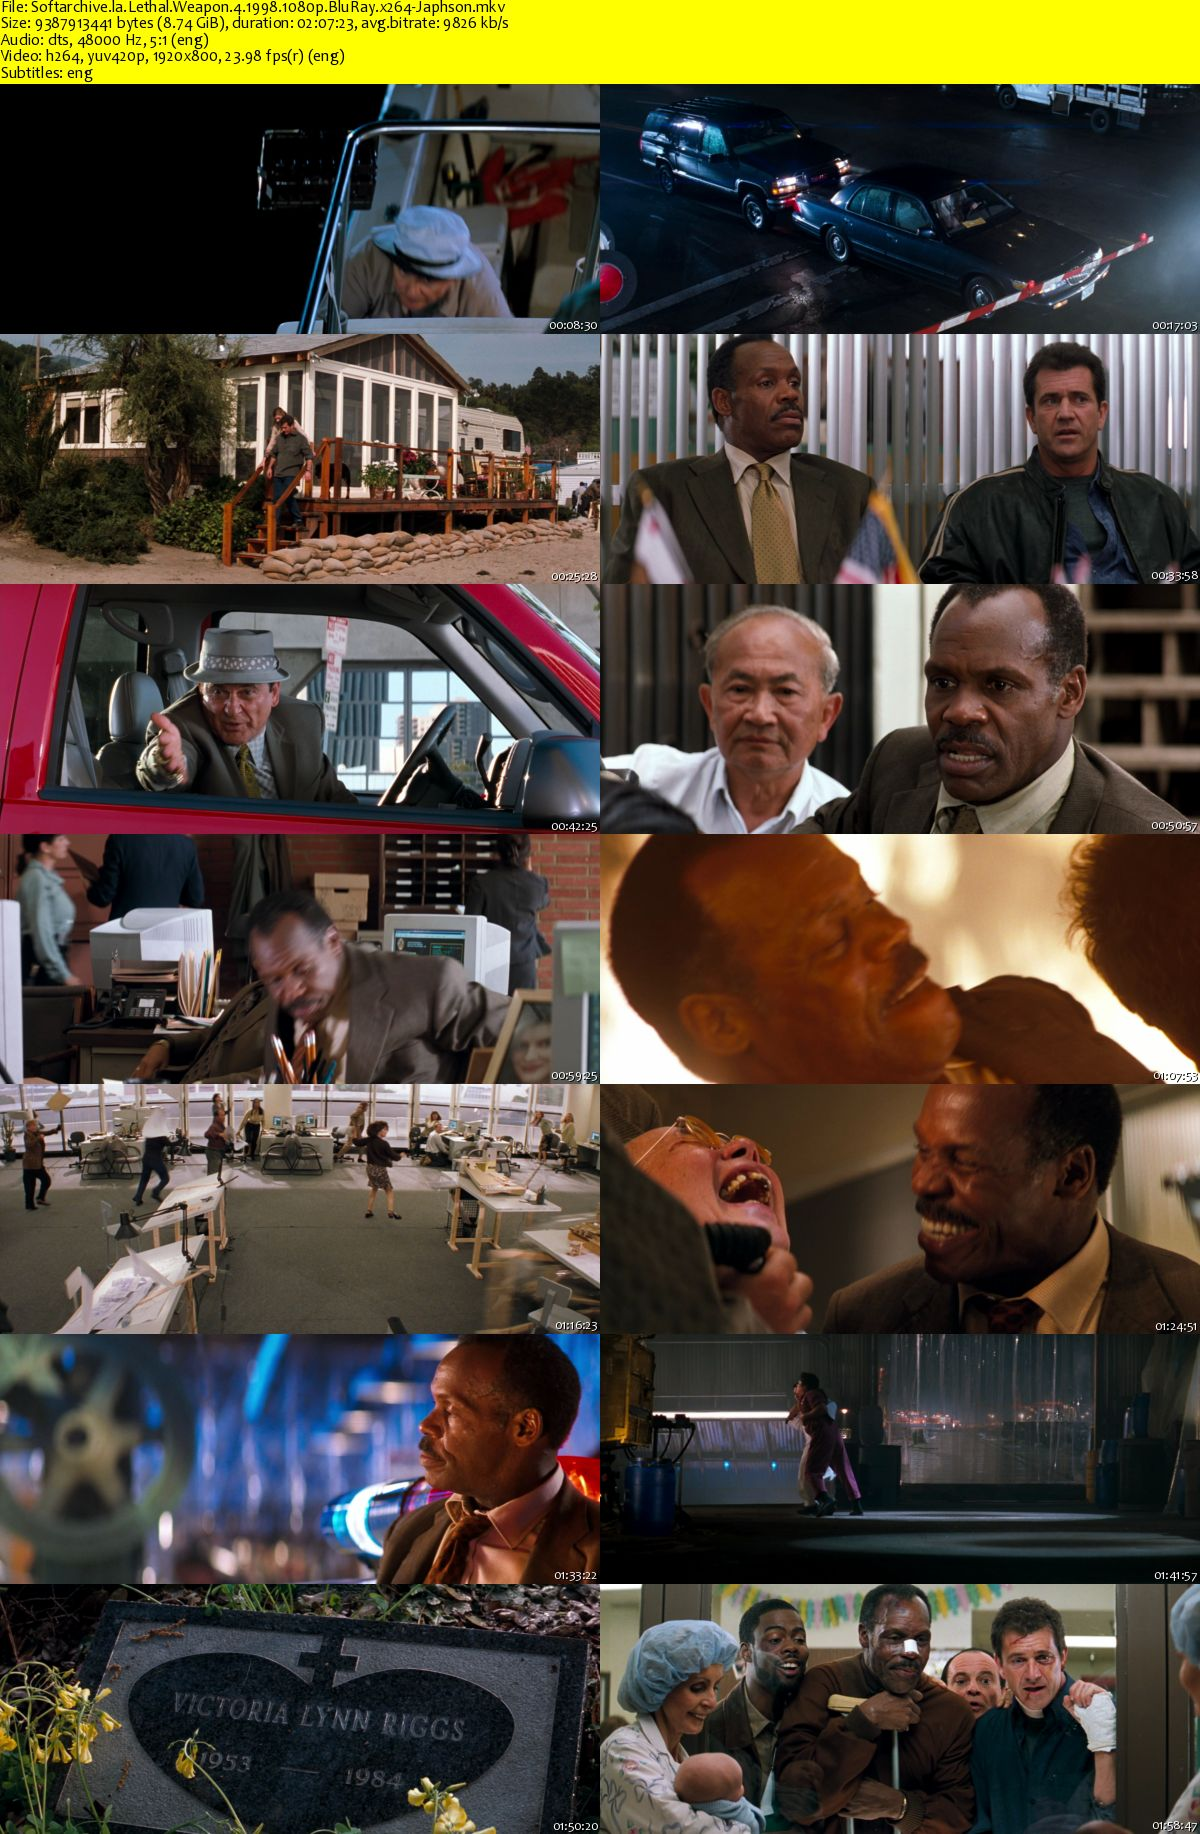 Download Lethal Weapon 4 1998 1080p Bluray X264 Japhson Softarchive